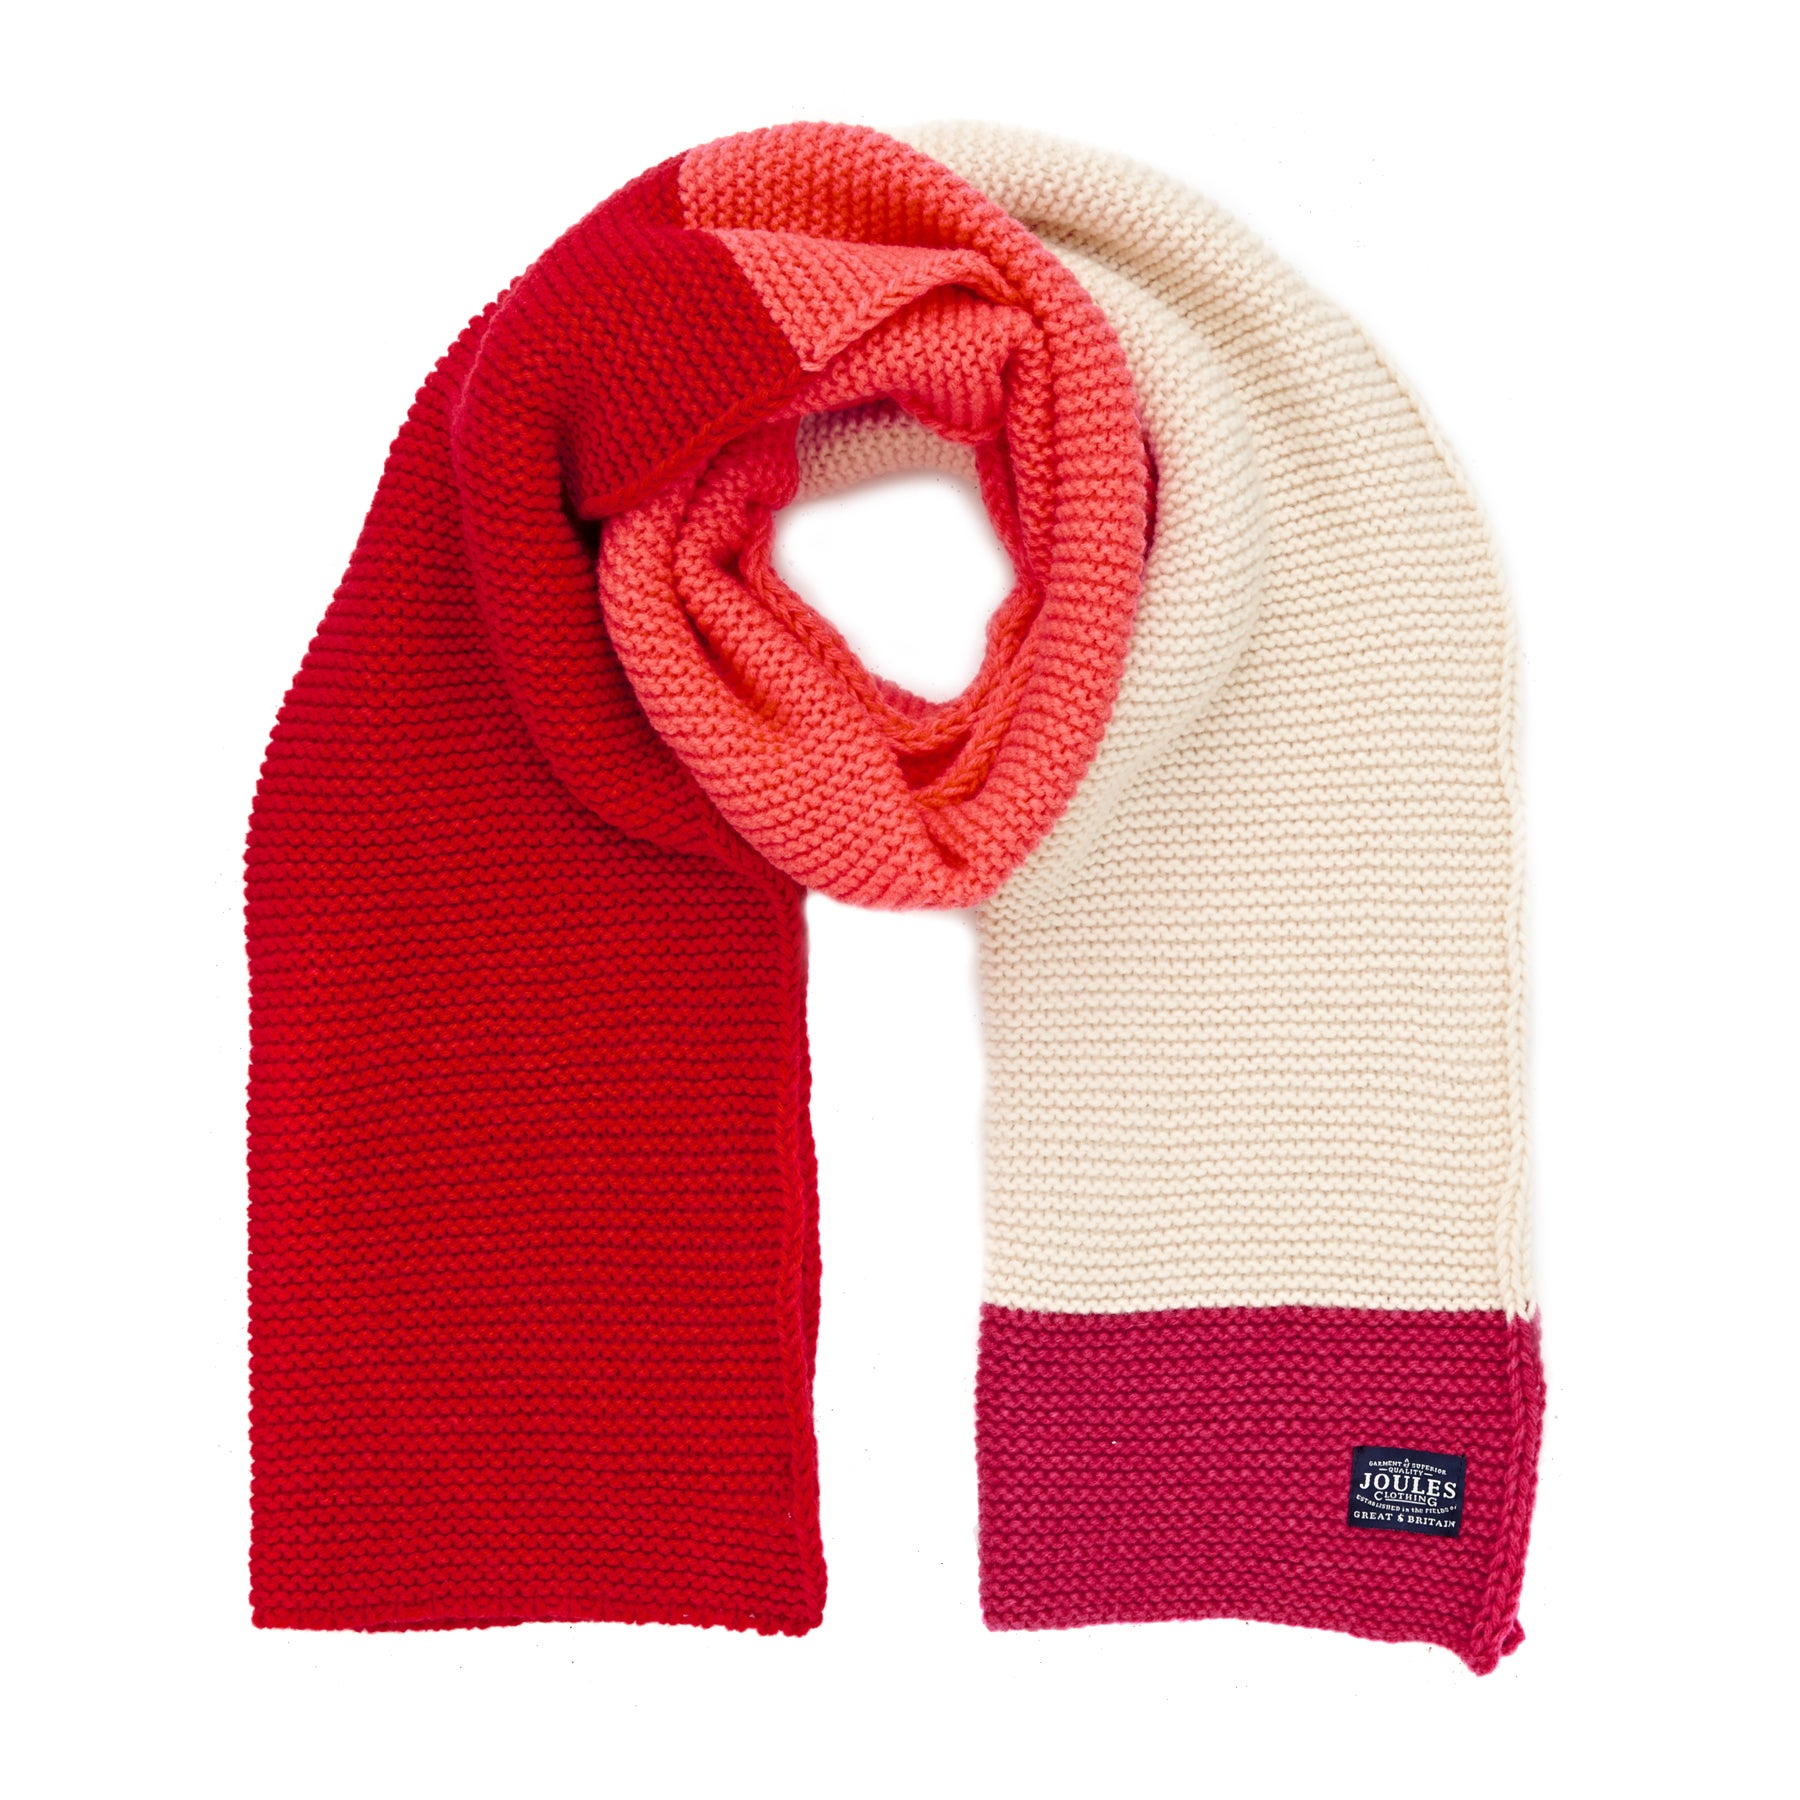 Joules Annis Knitted Womens Scarf - Fuschia